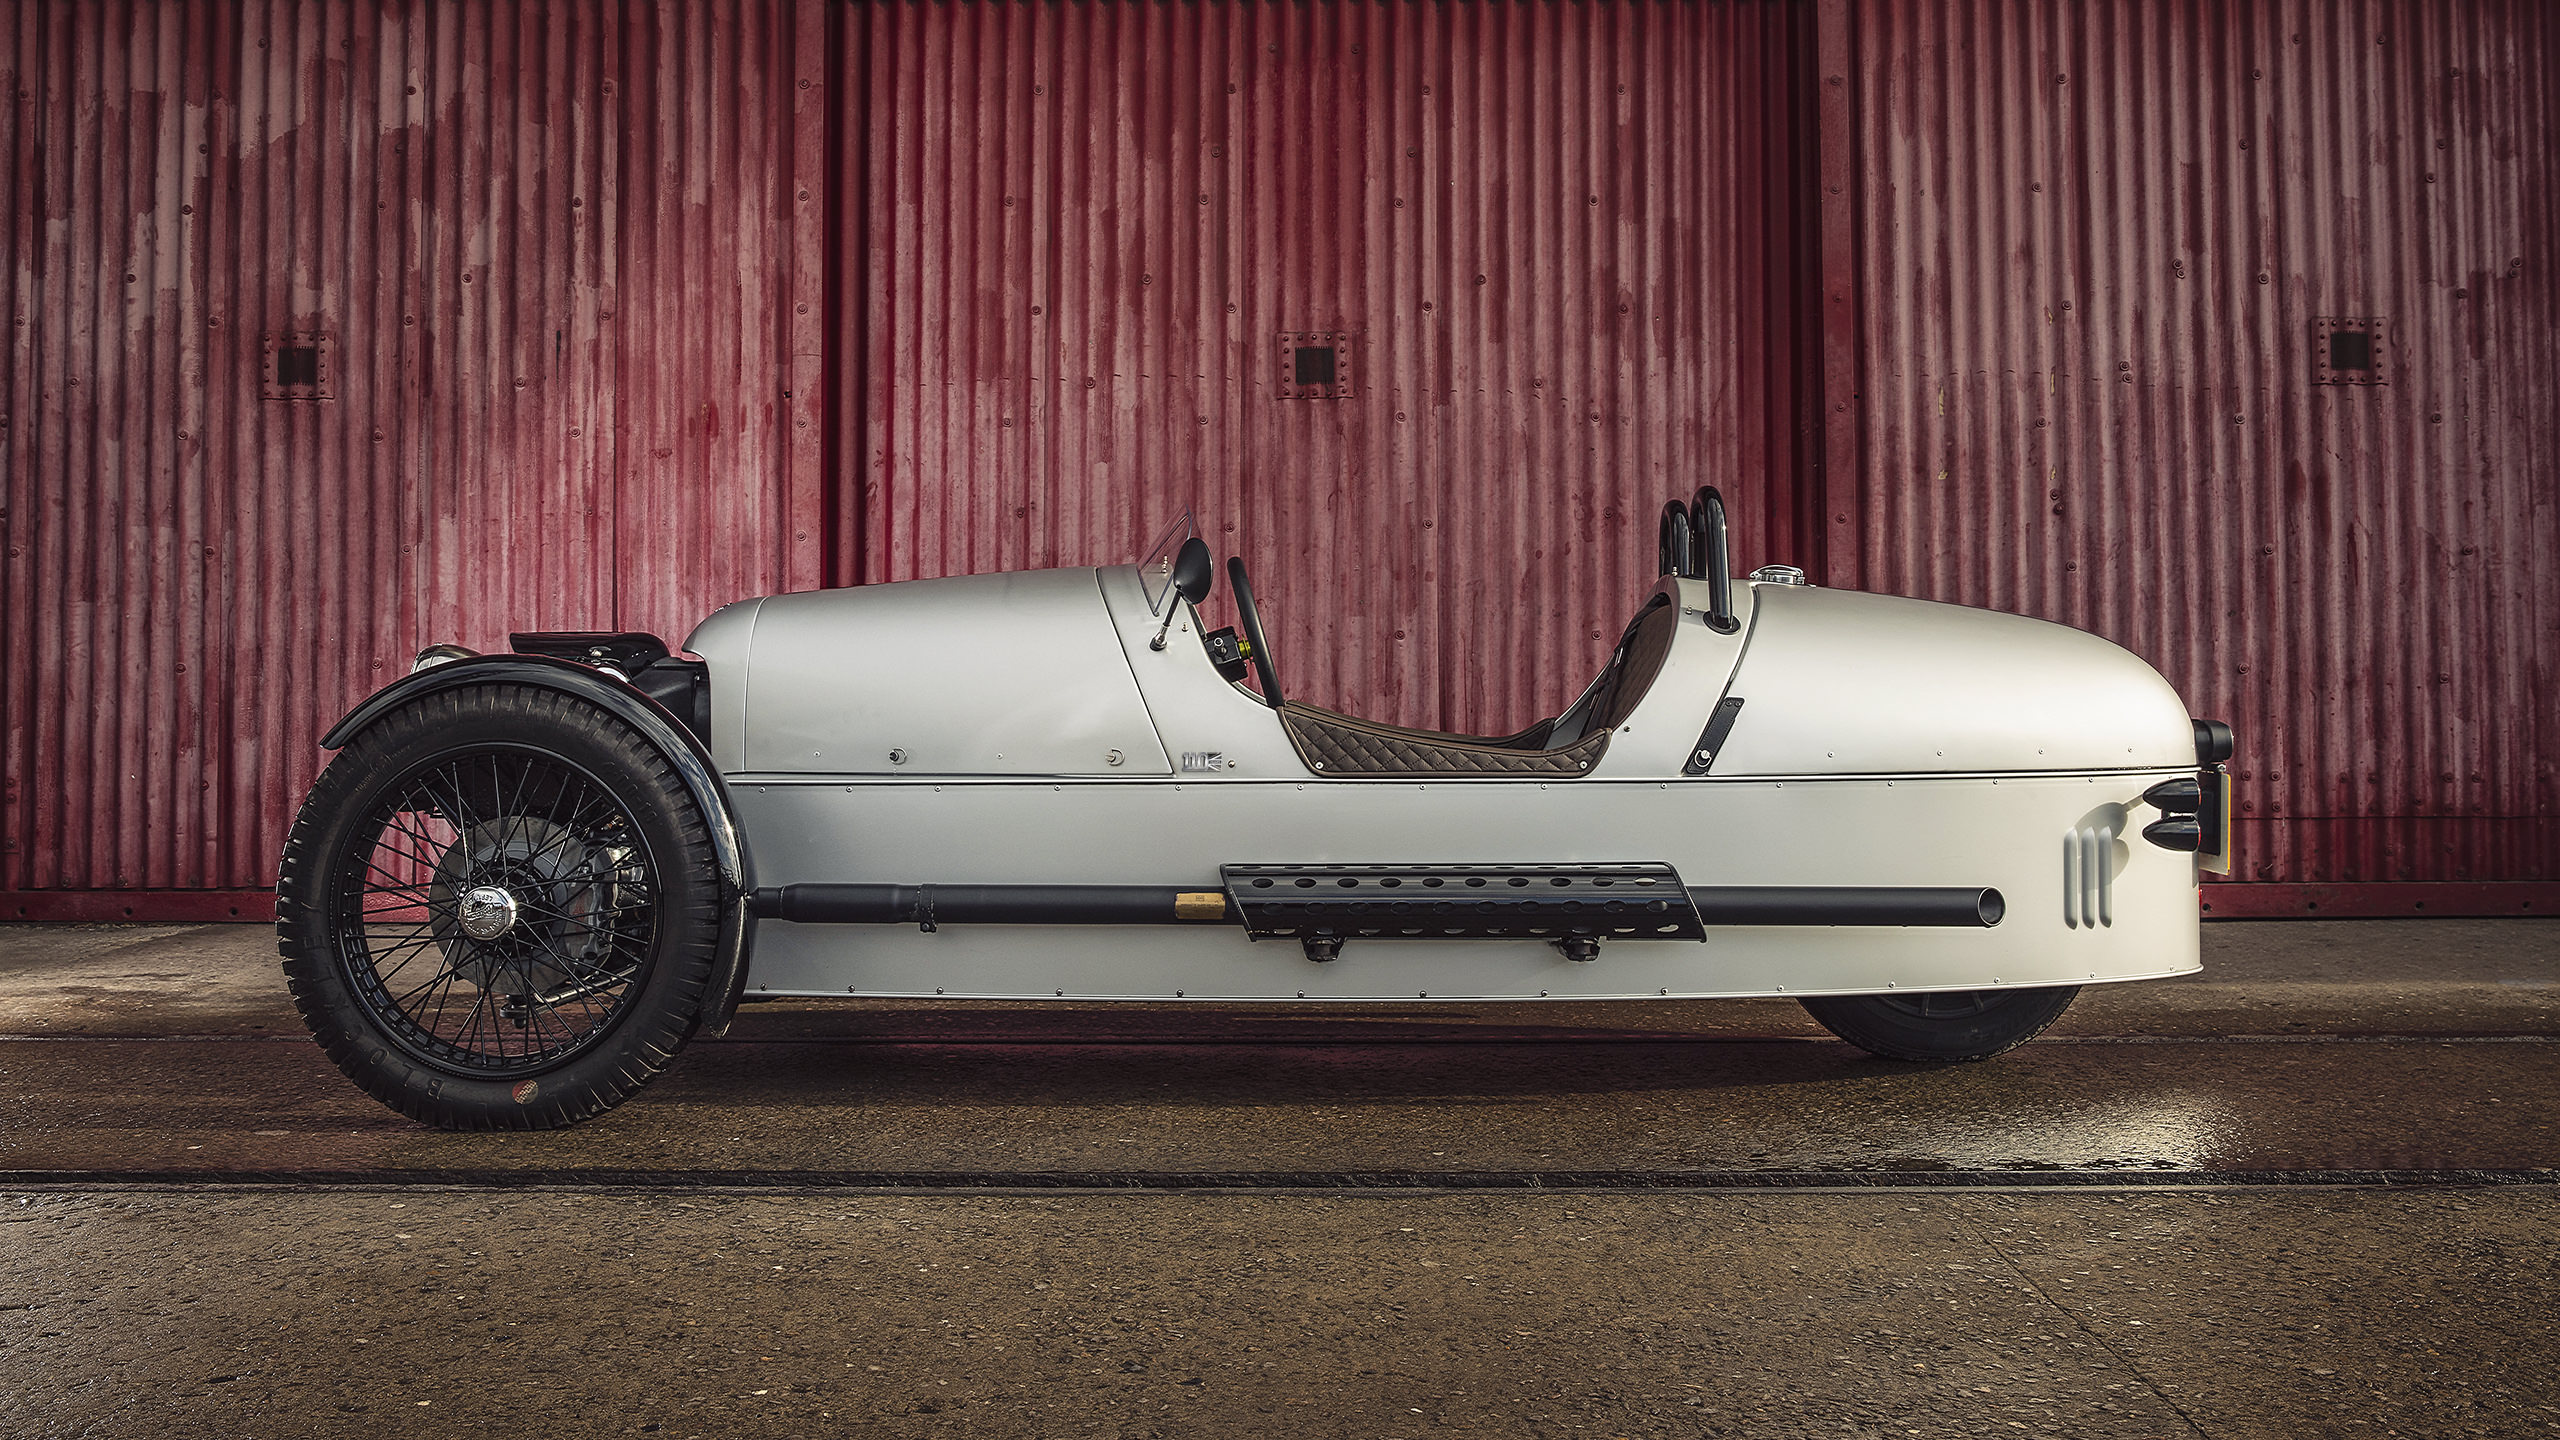 The Morgan 3 Wheeler There Are 2 Diagrams For This Vehicle Since It Has Options New Paint